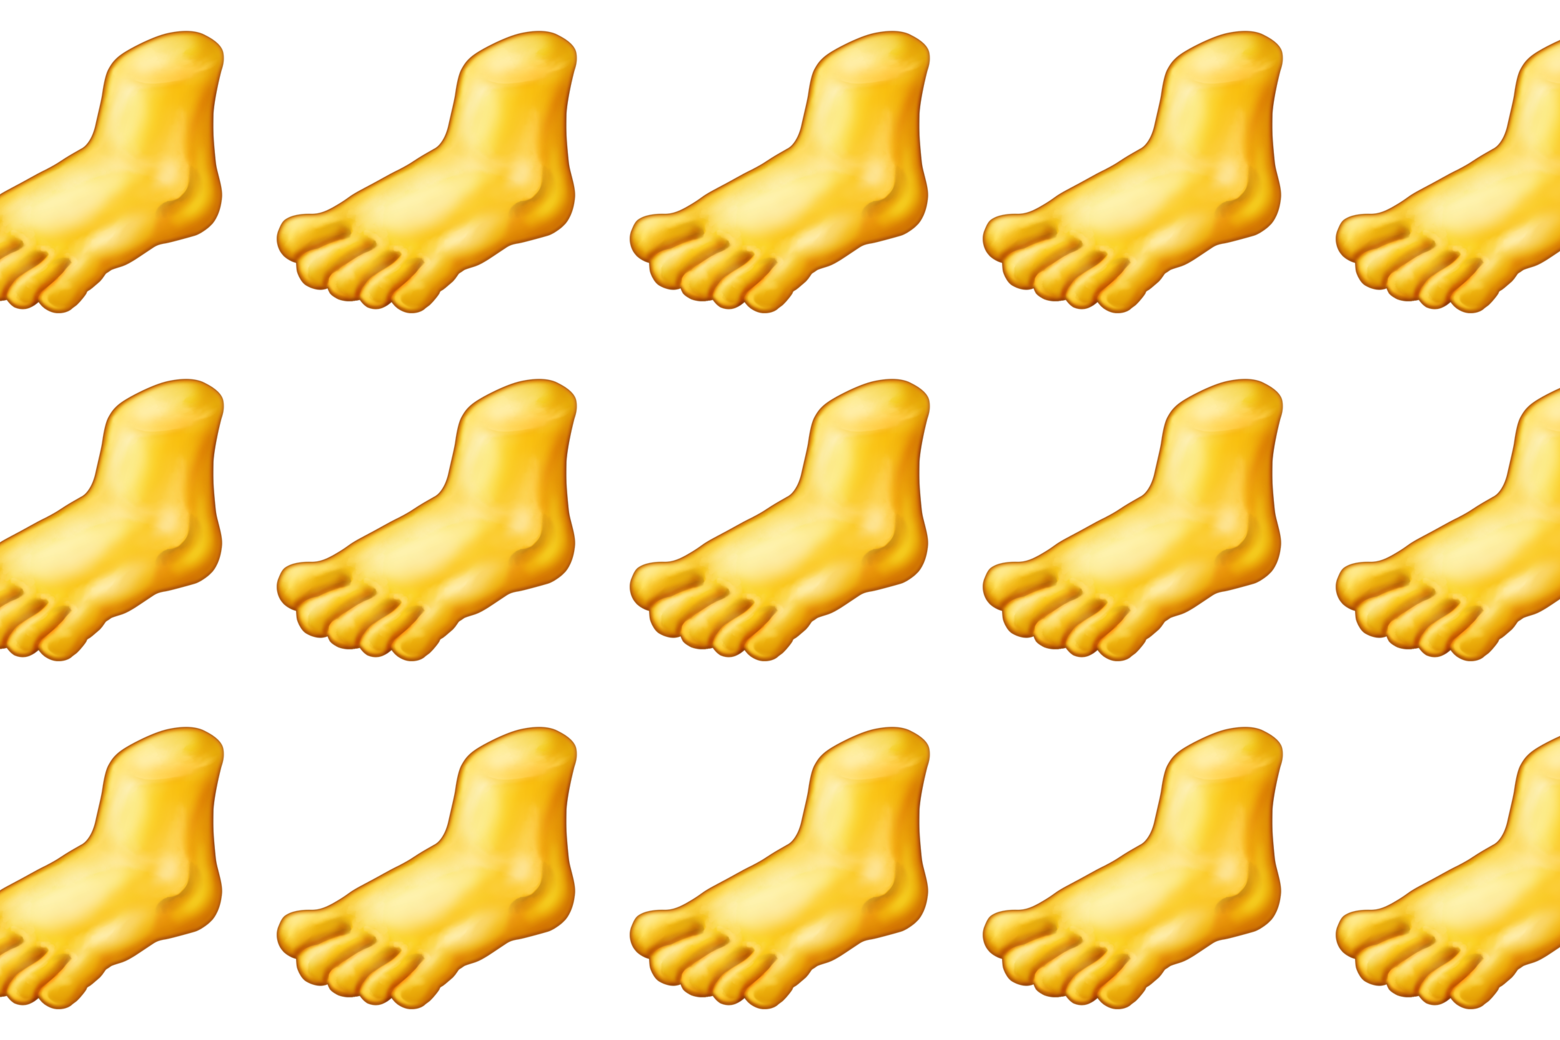 Severed foot emojis.